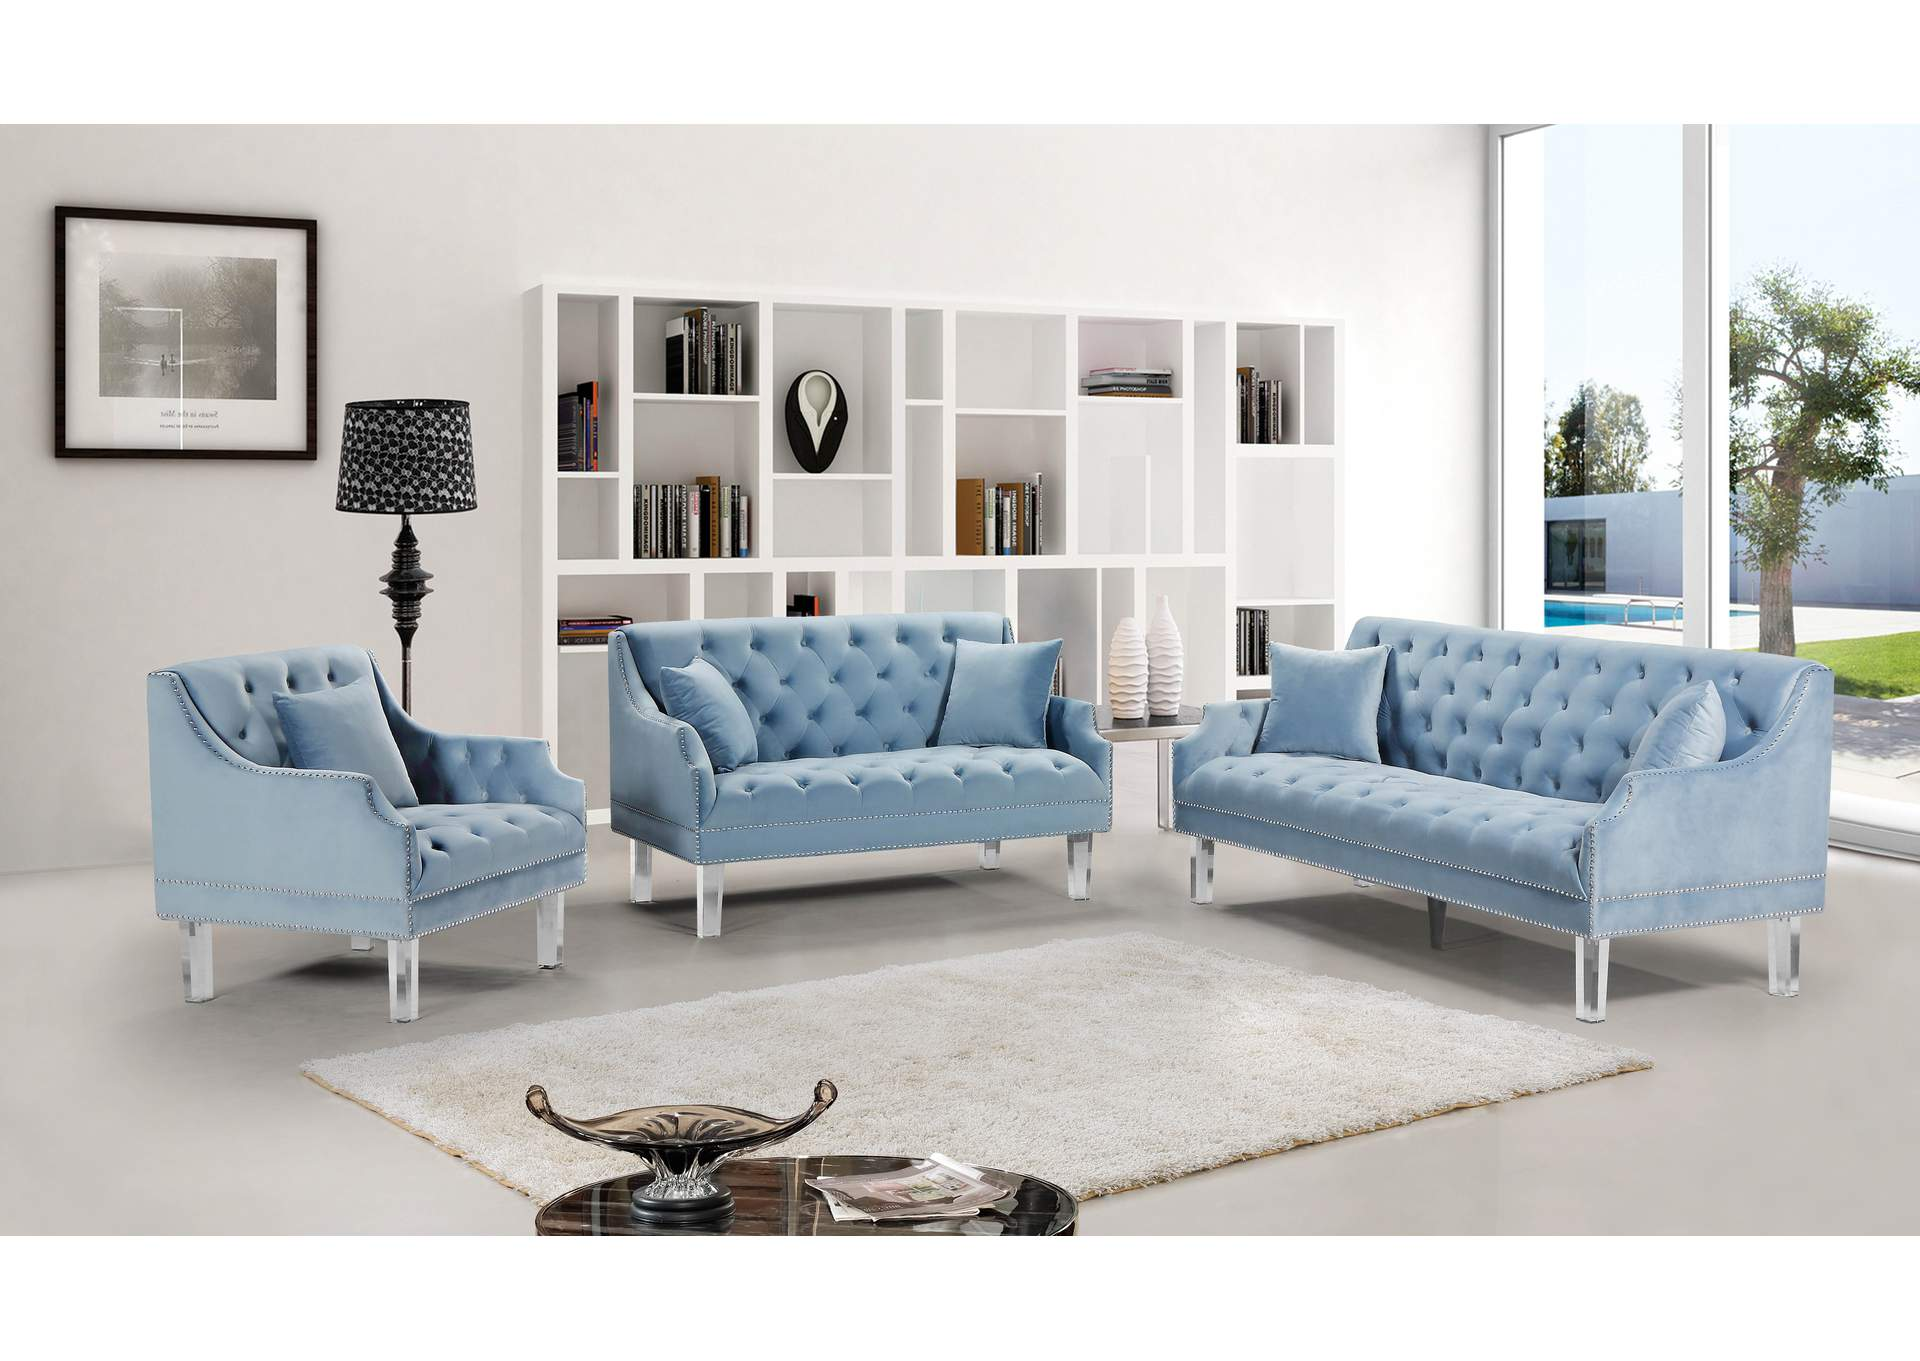 Picture of: Roxy Sky Blue Velvet Sofa And Loveseat Best Buy Furniture And Mattress